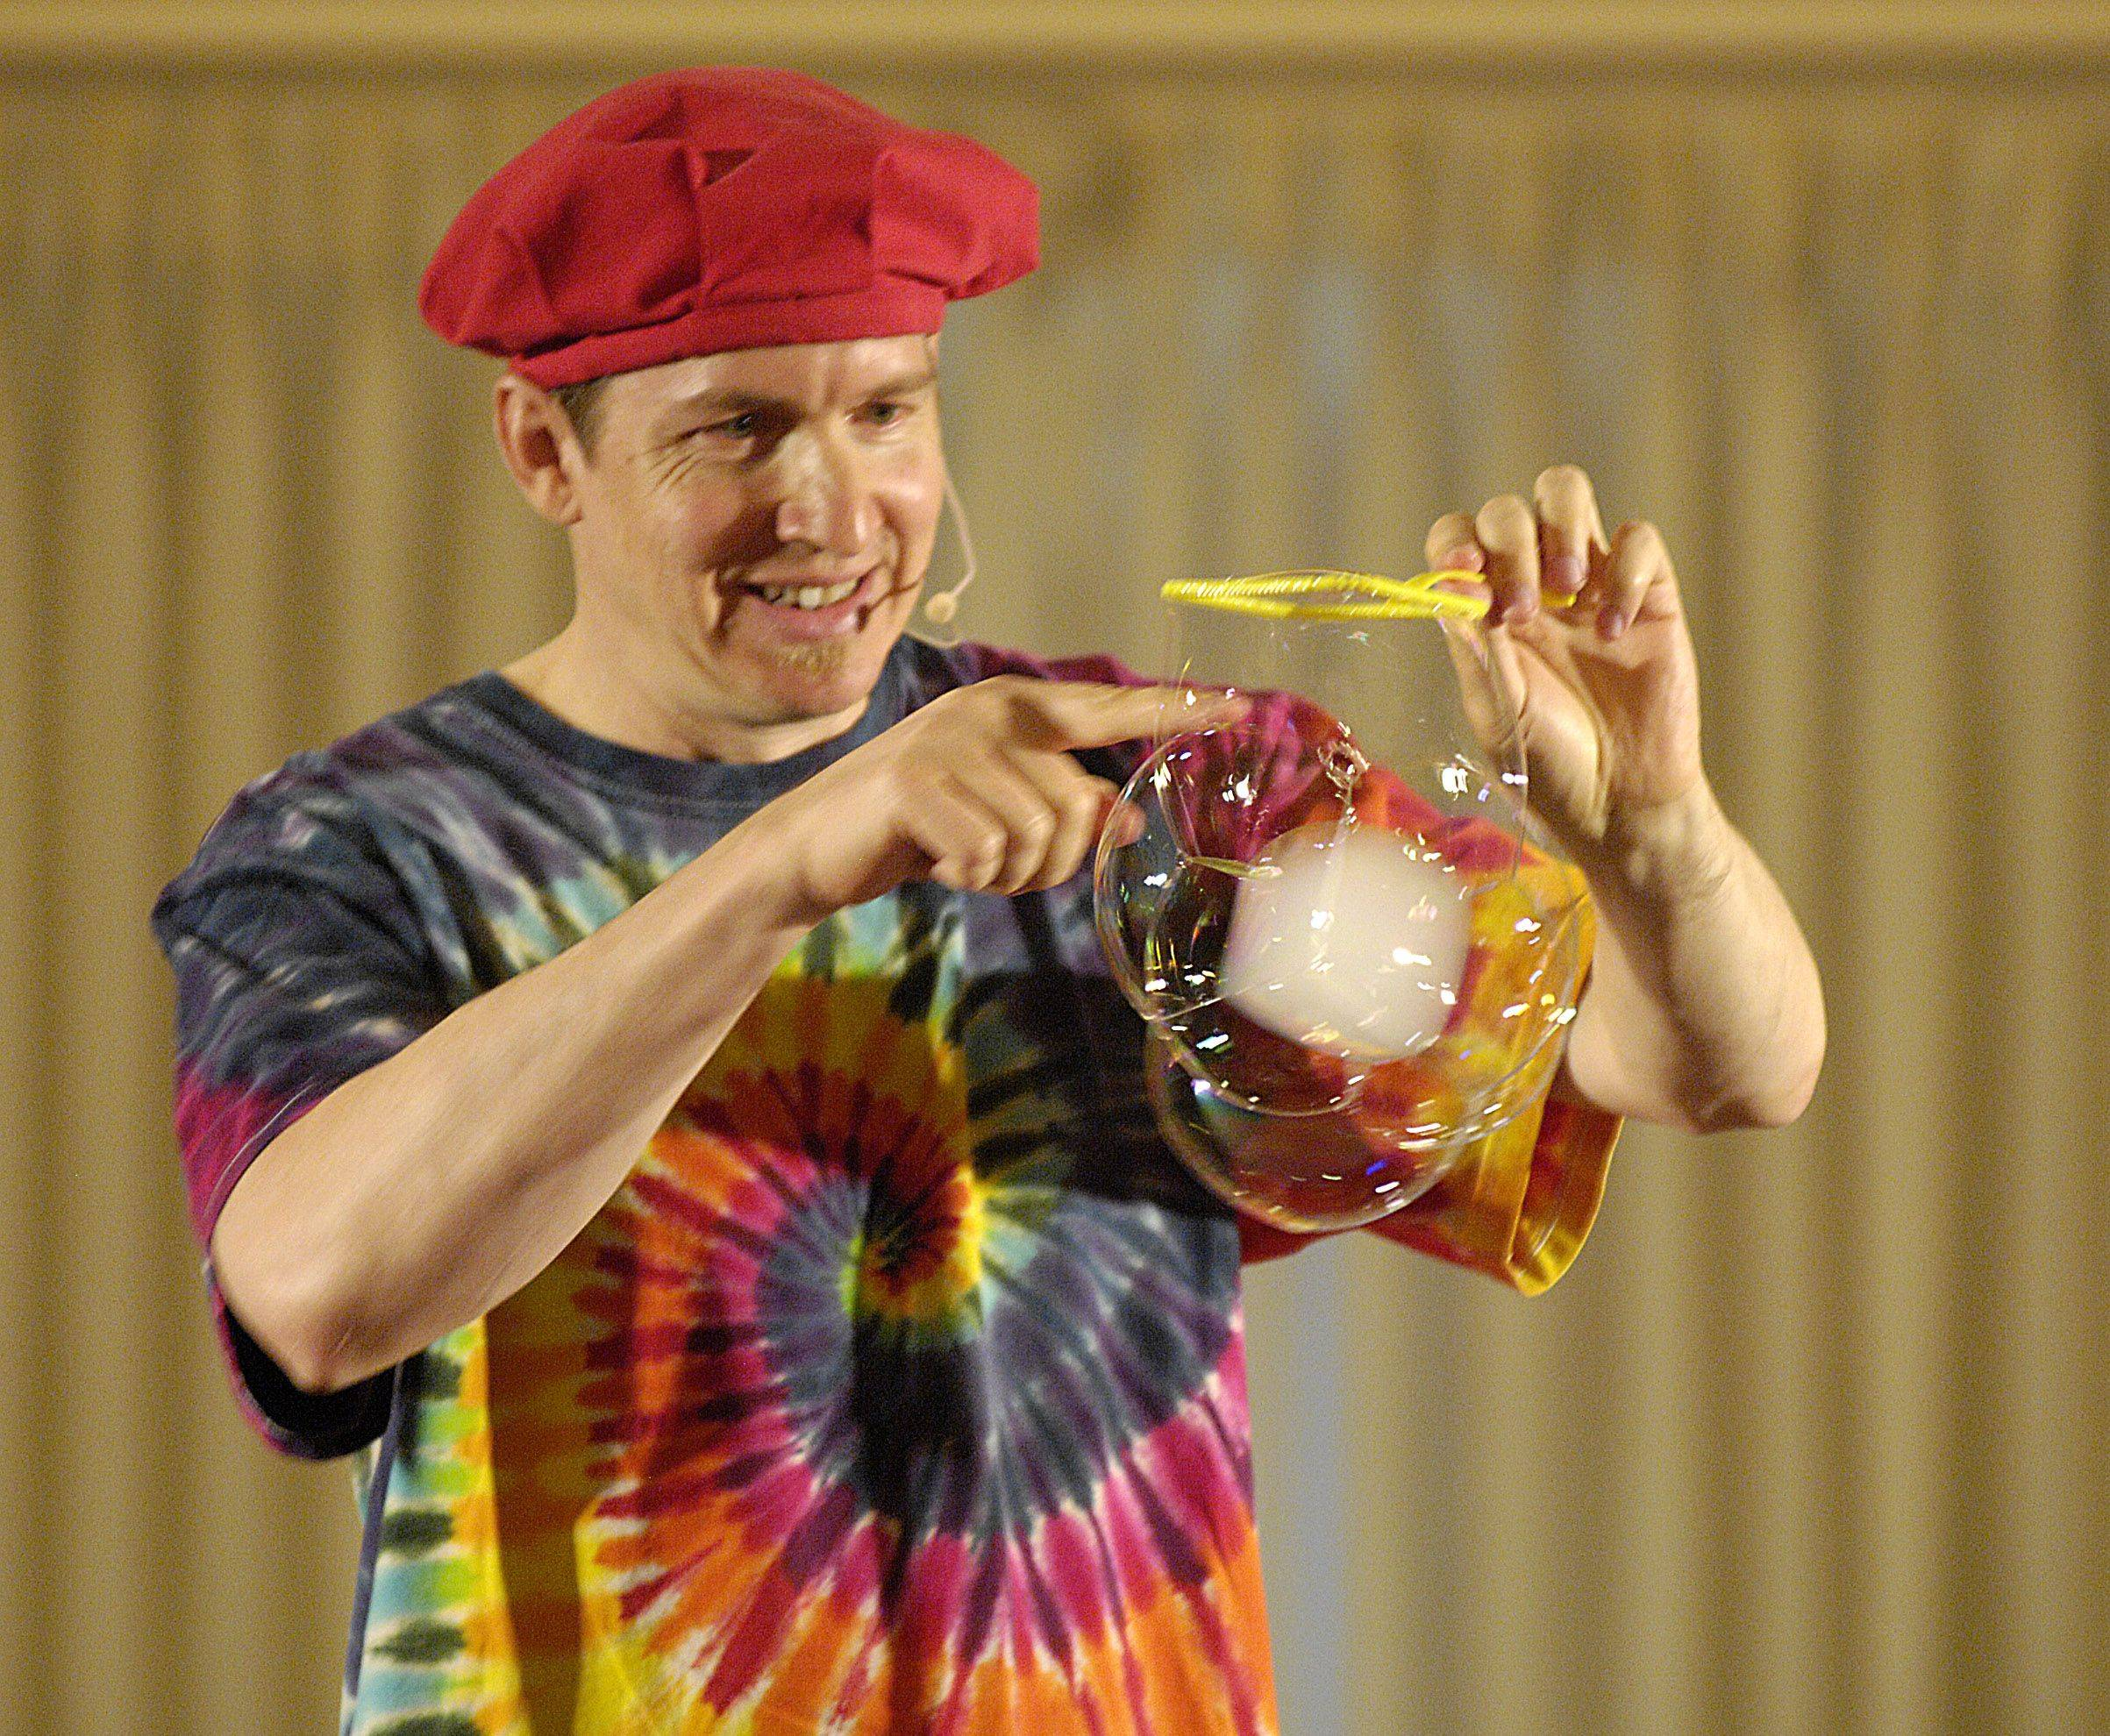 Geoff Akins of Bubble Wonders makes a square bubble while performing for teachers and parents at the Premier Showcase of school assembly performers Tuesday in Lombard.